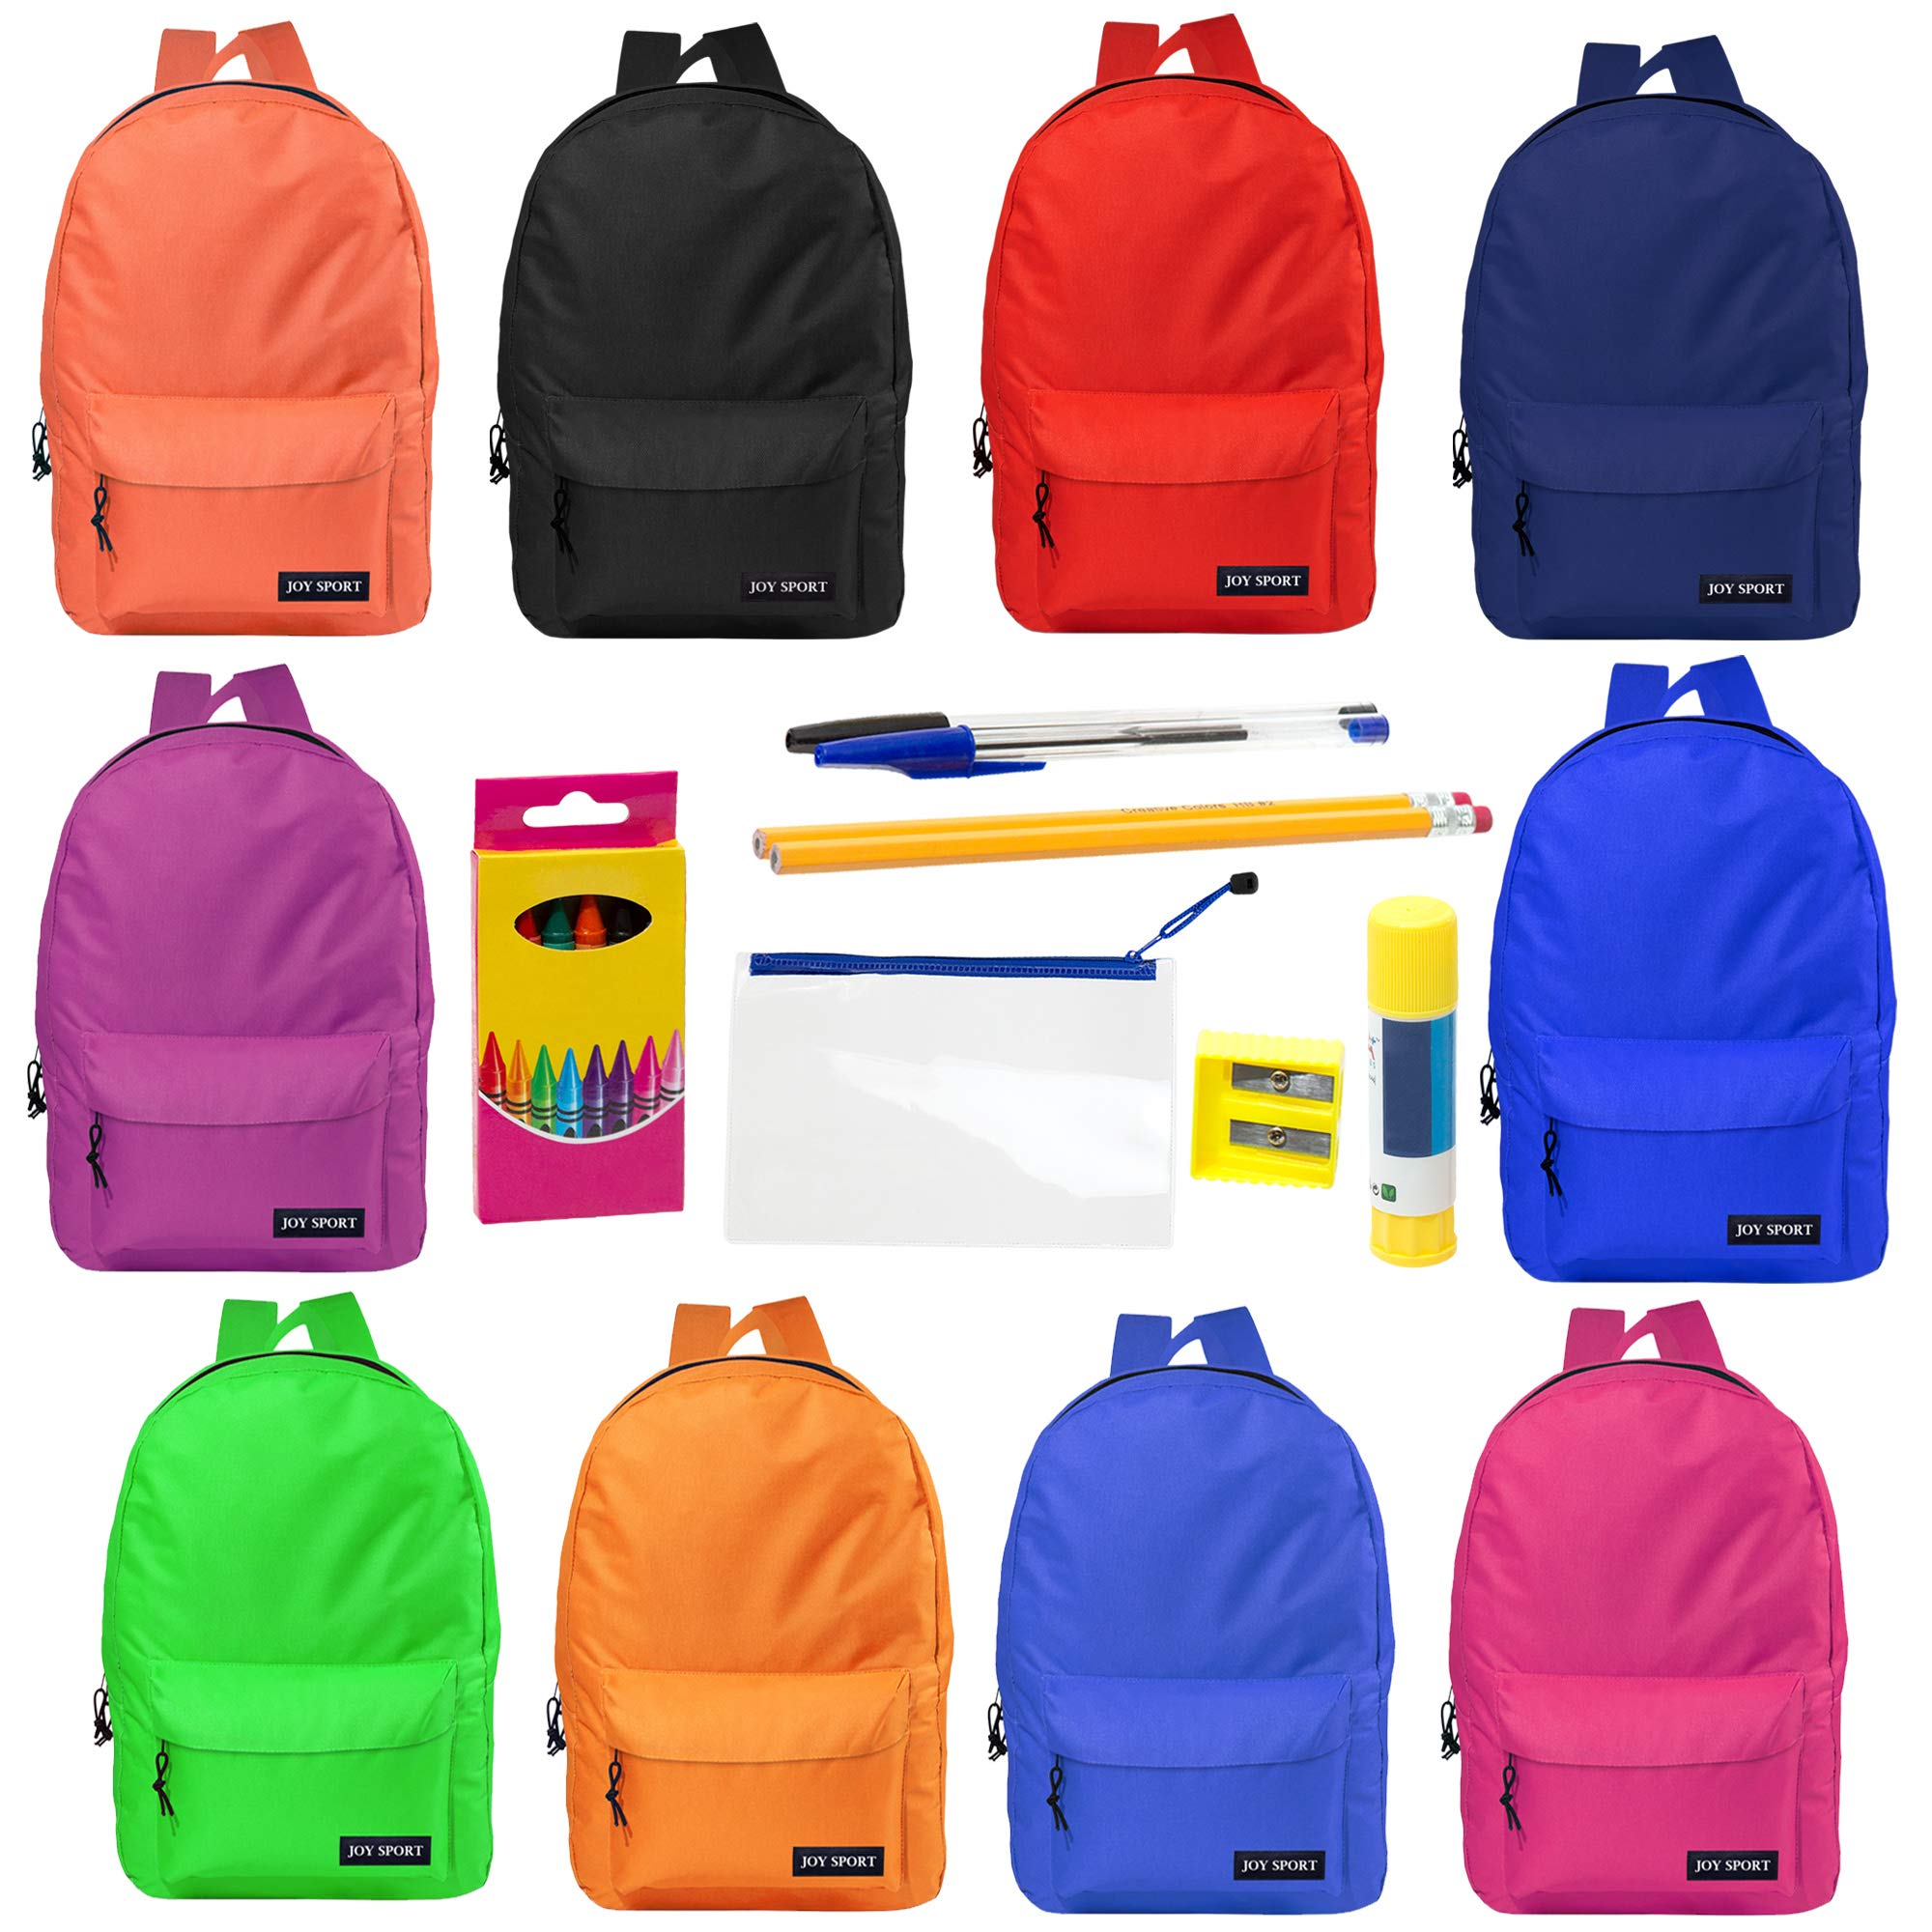 17 Inch Wholesale Backpacks in Assorted Colors with 12 Piece School Supply Kits Bulk Case of 24 (10 Color Assortment)